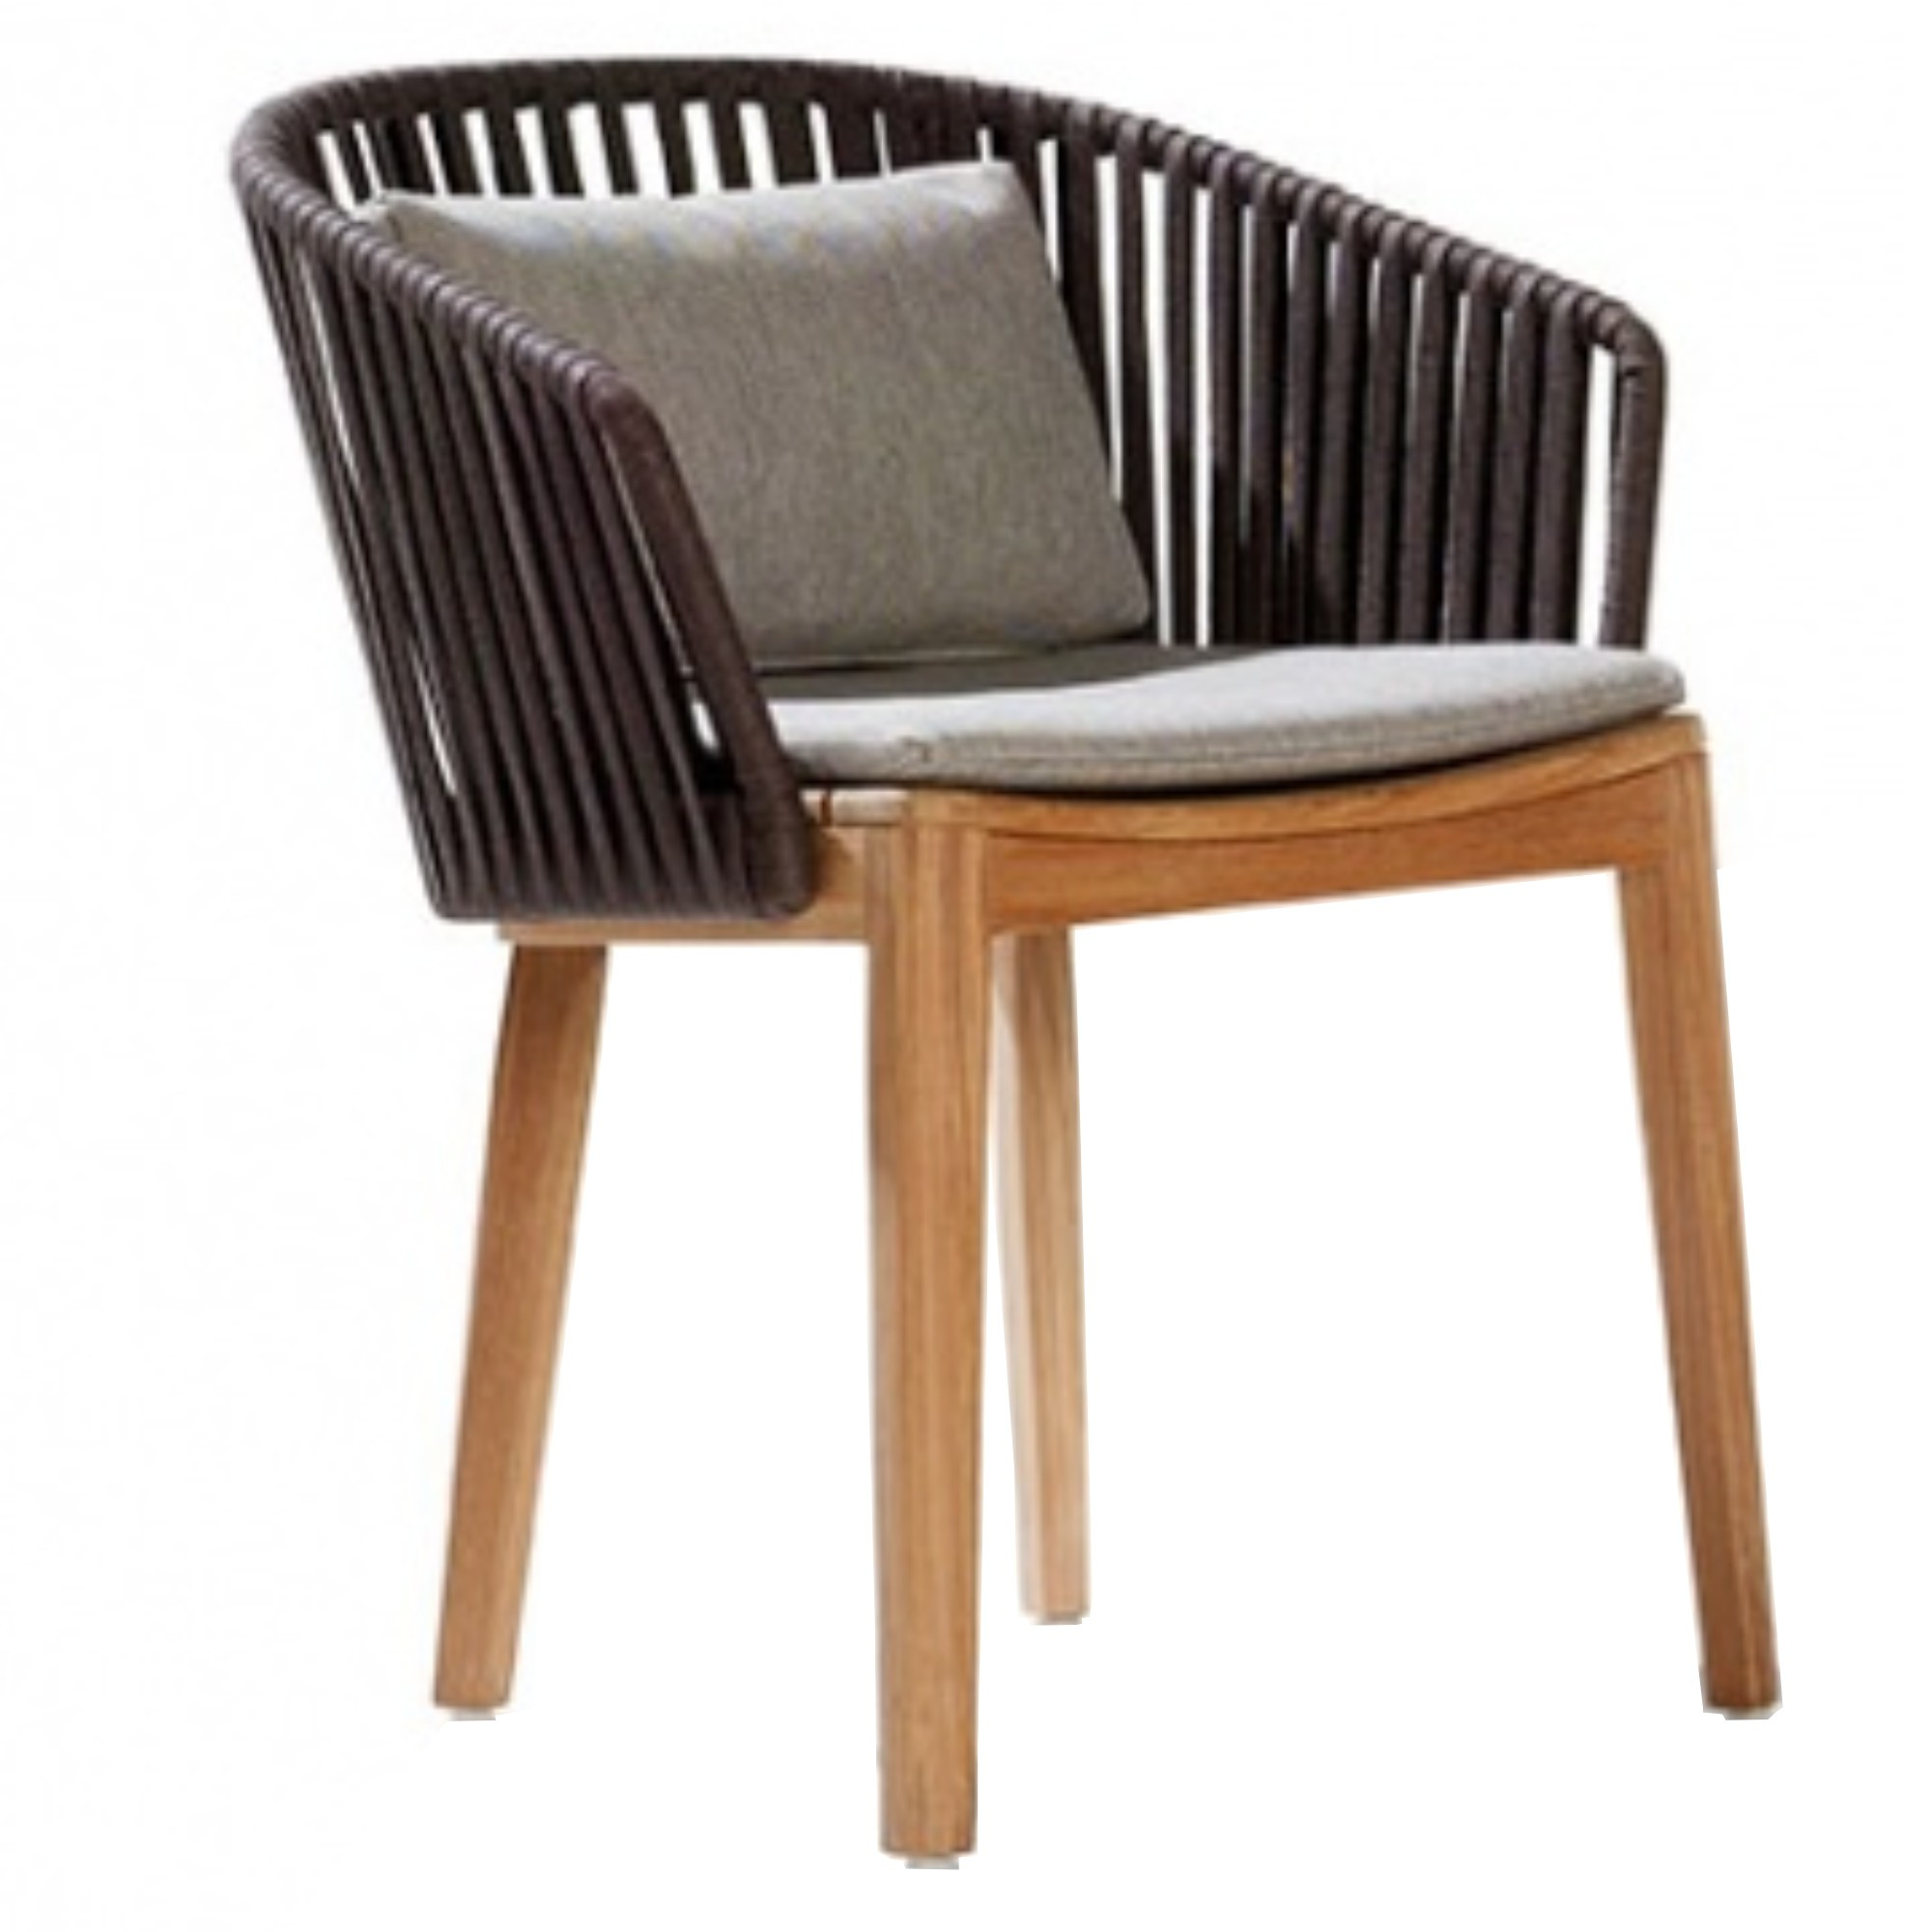 MOOD DINING CHAIR, by TRIBU